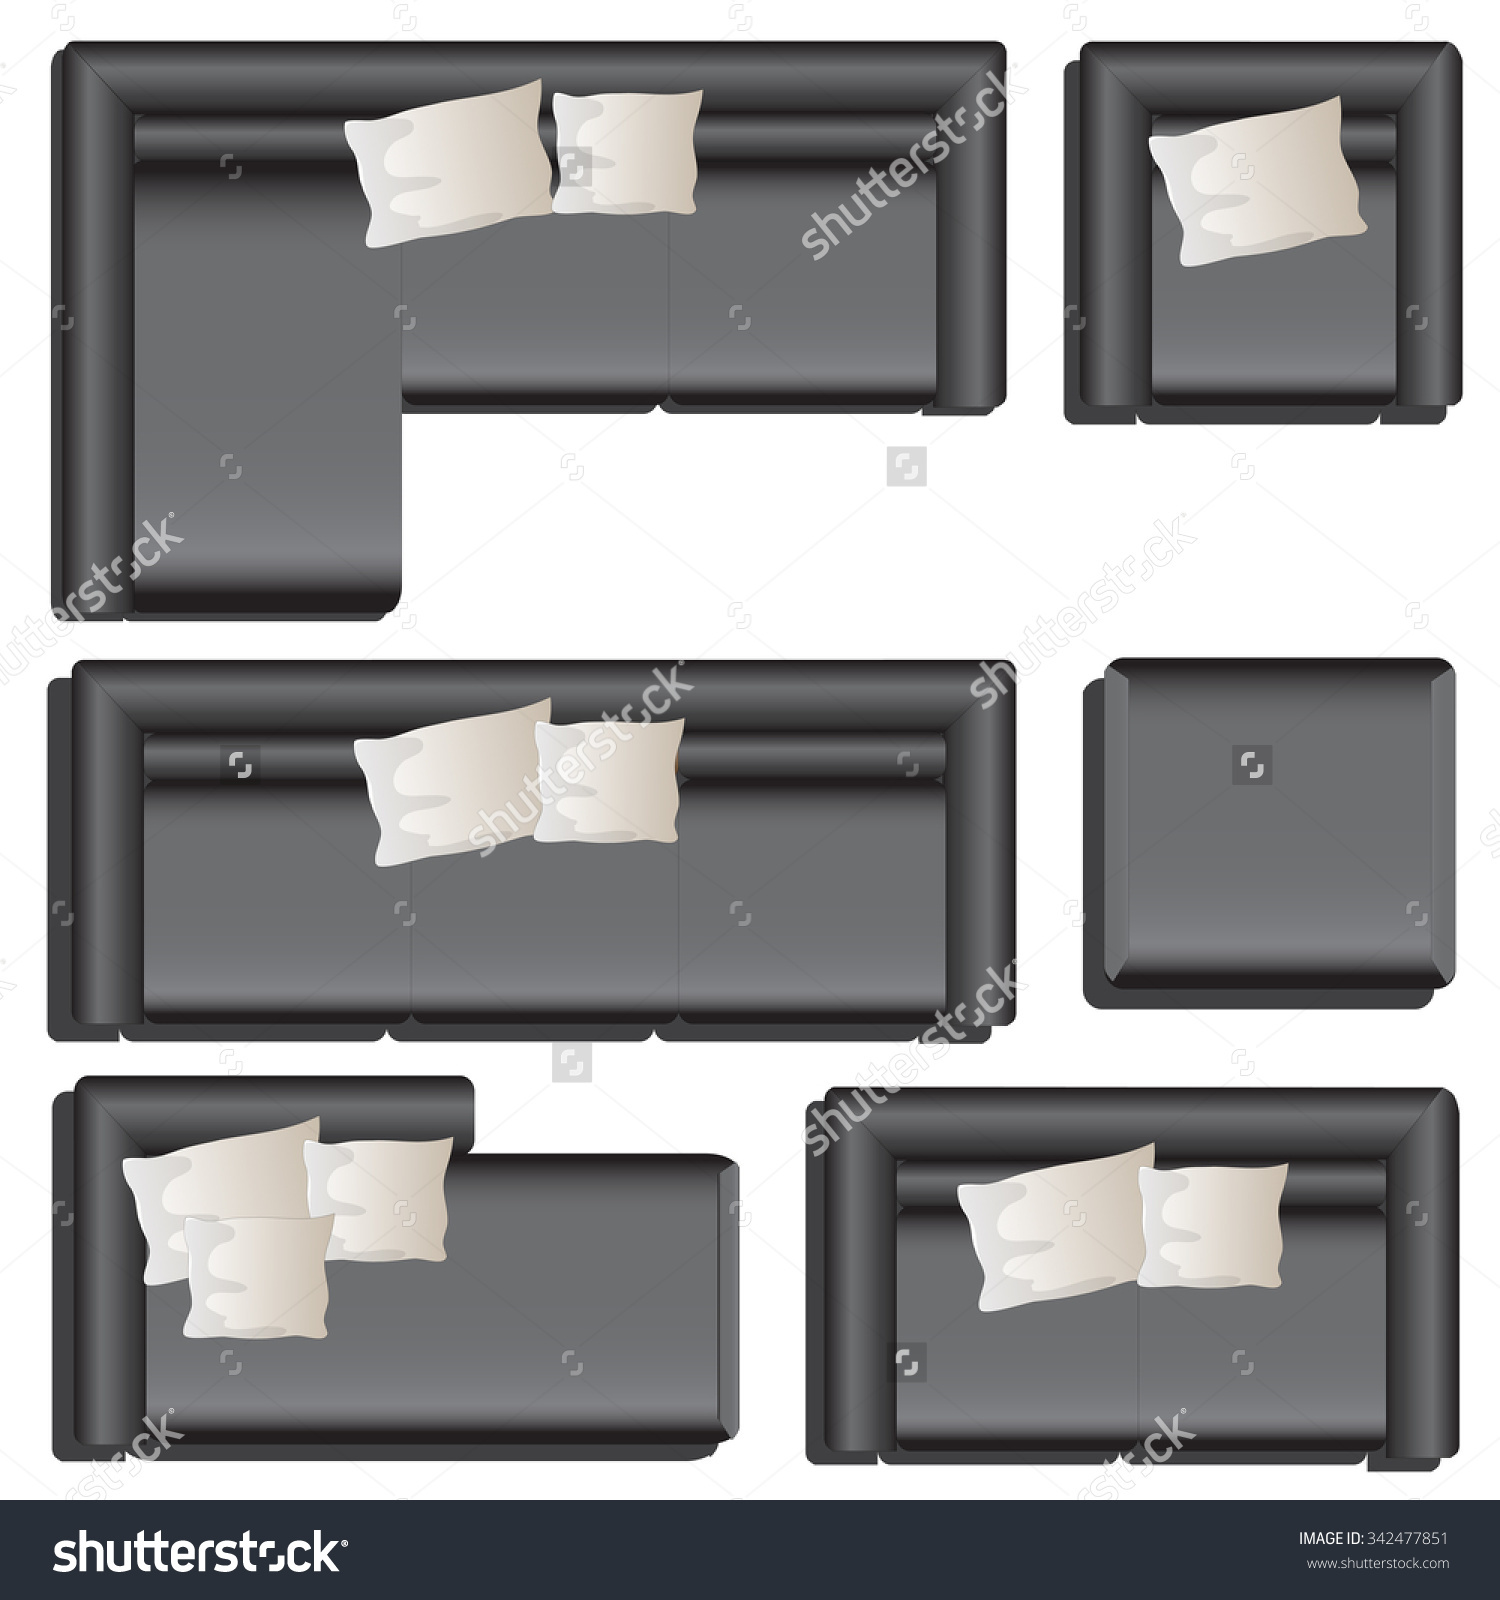 Couch Clipart Top View.